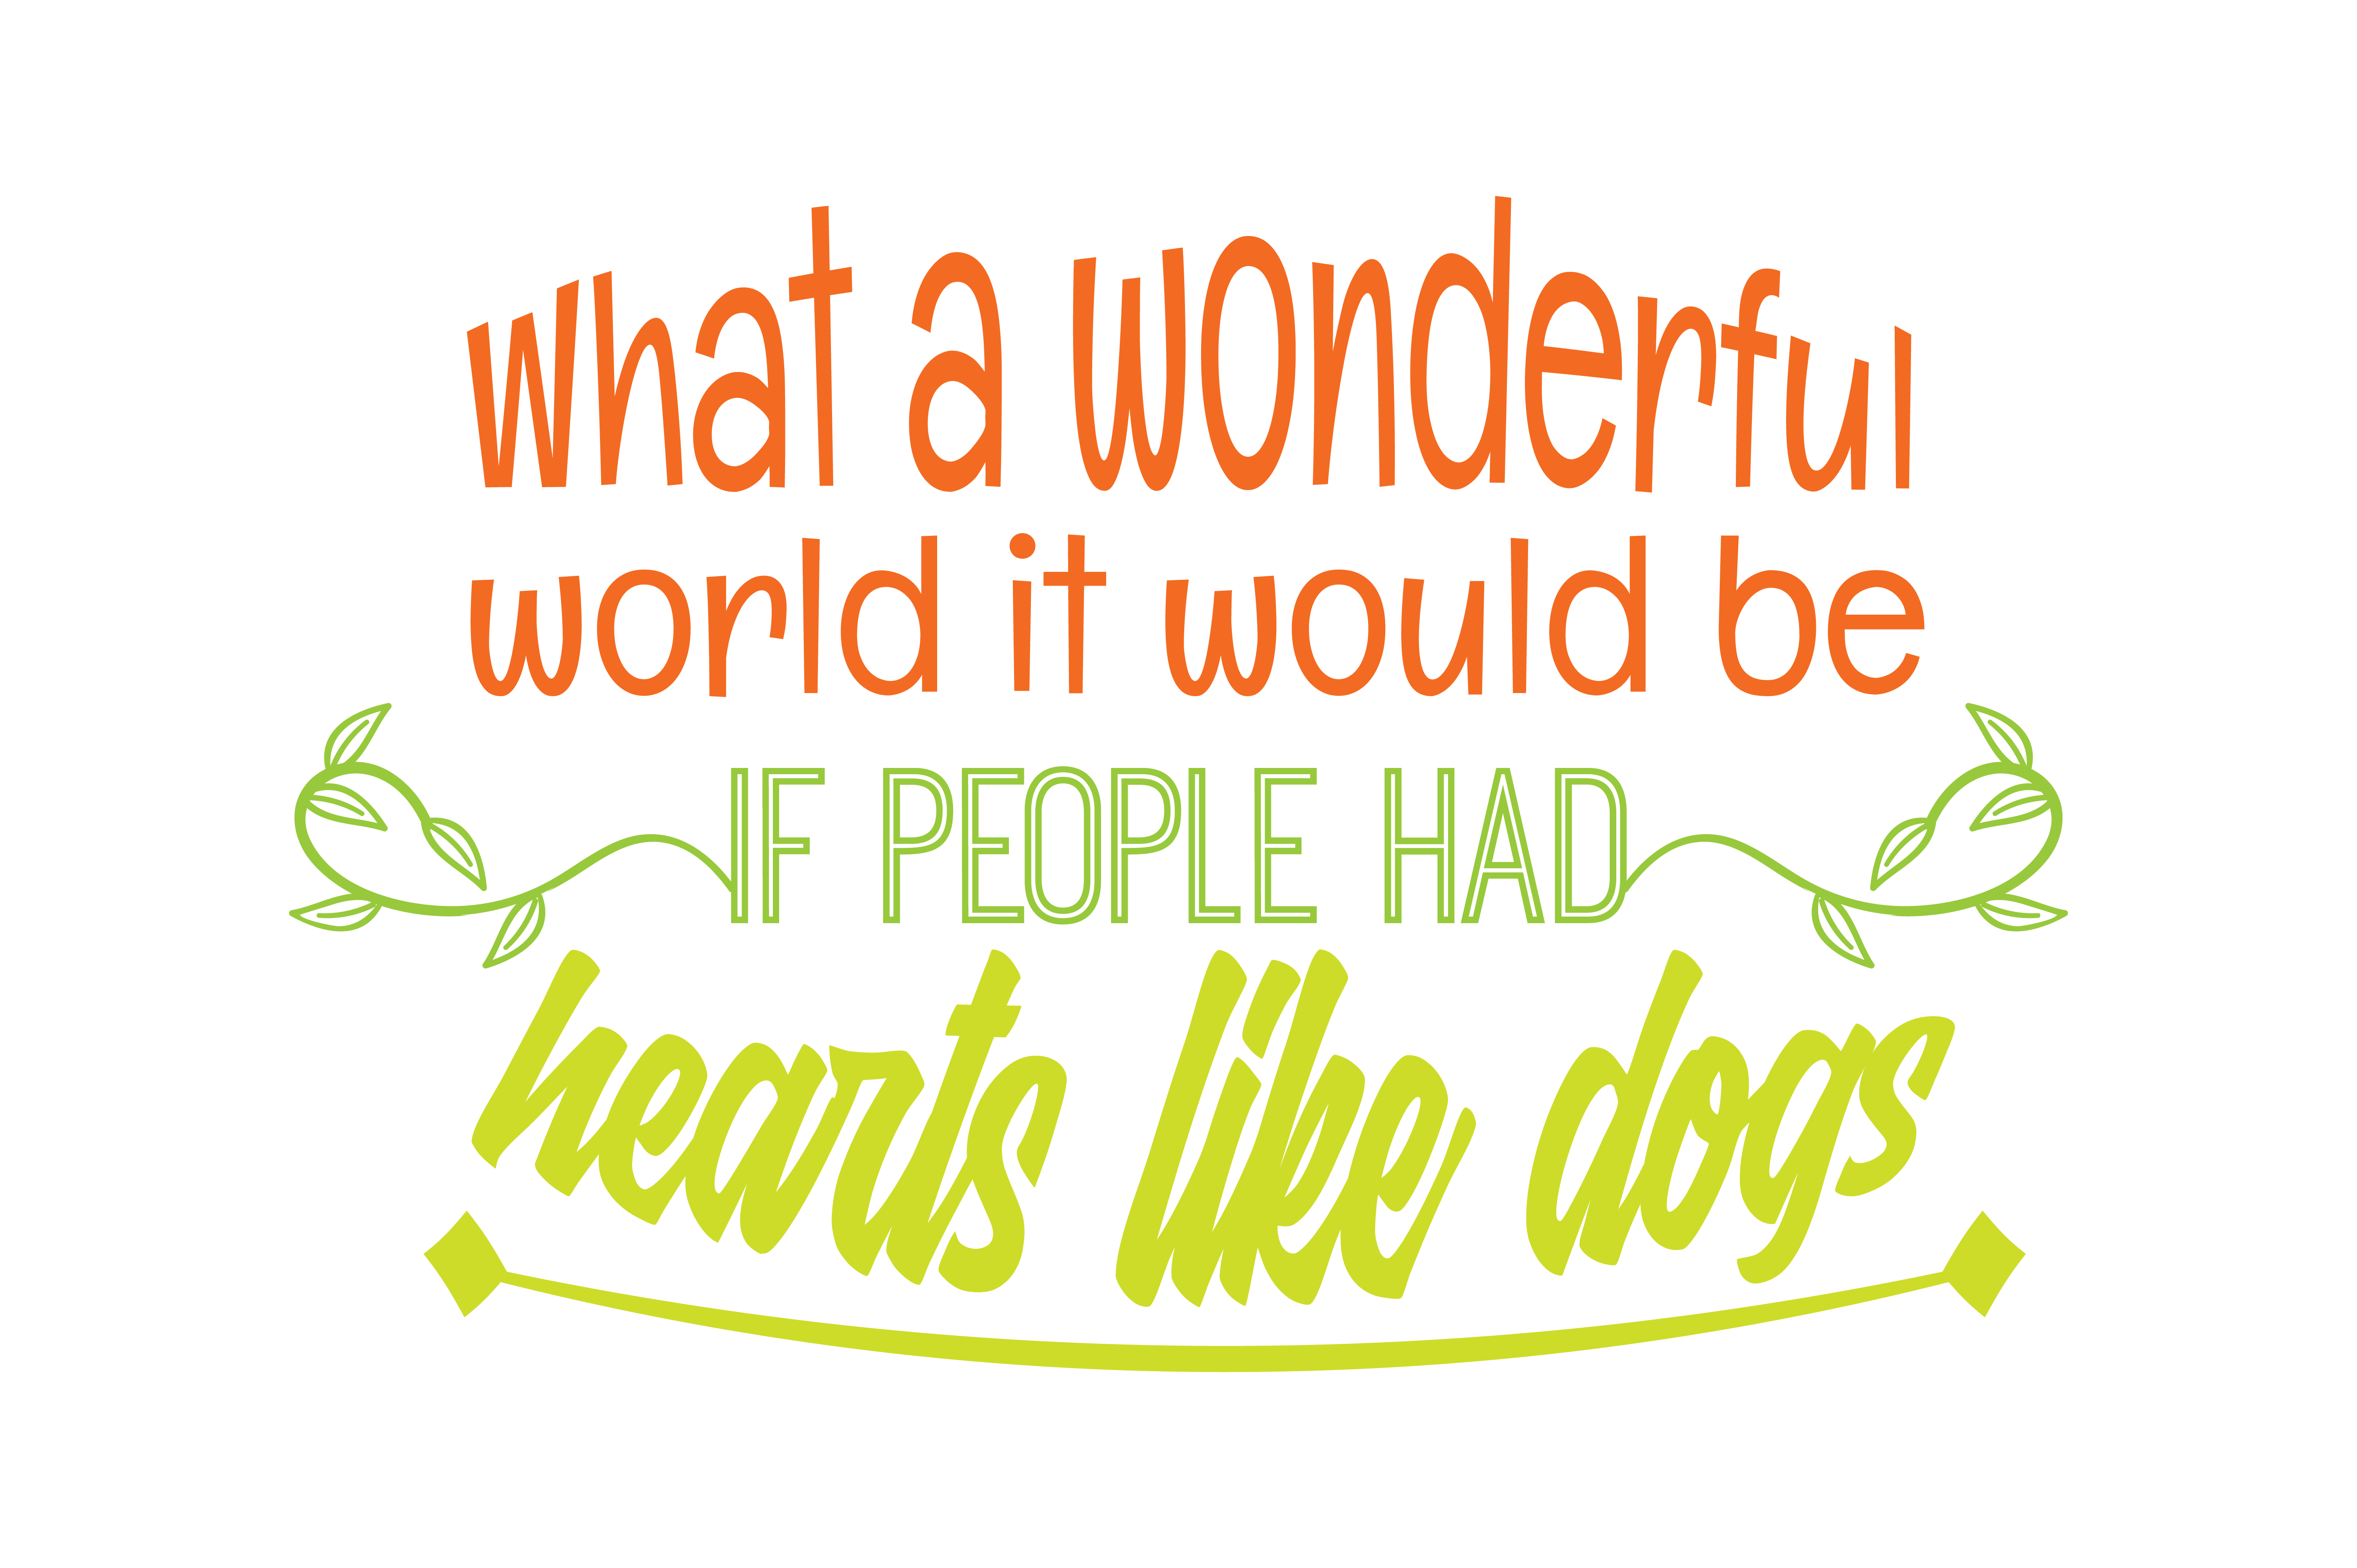 Download Free What A Wonderful World It Would Be If People Had Hearts Like Dogs for Cricut Explore, Silhouette and other cutting machines.